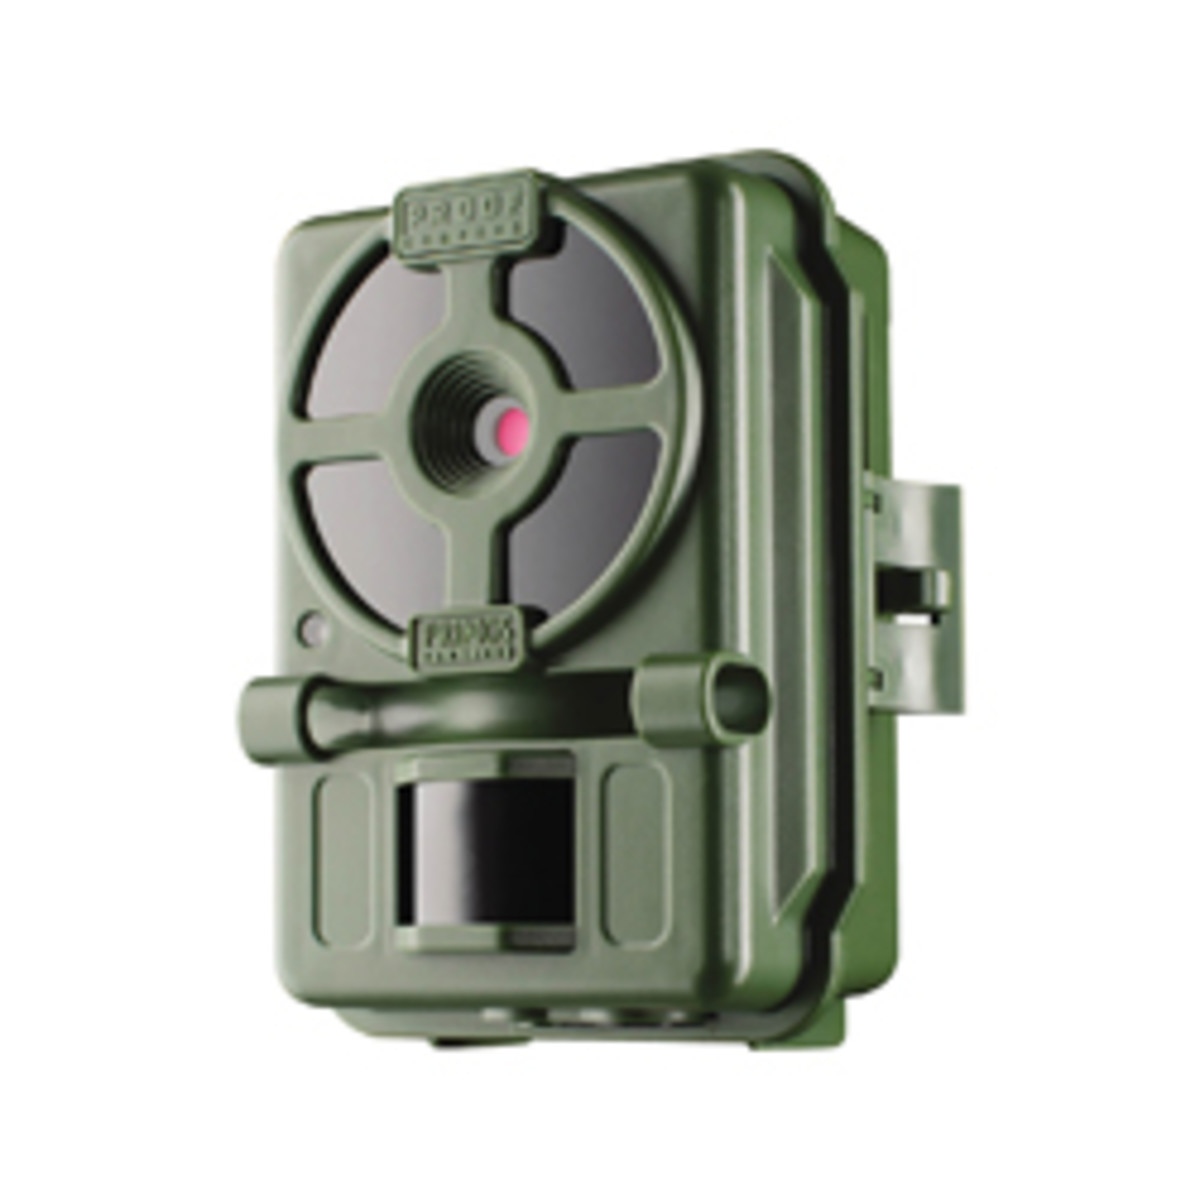 A trail cam available from Dick's Sporting Goods.